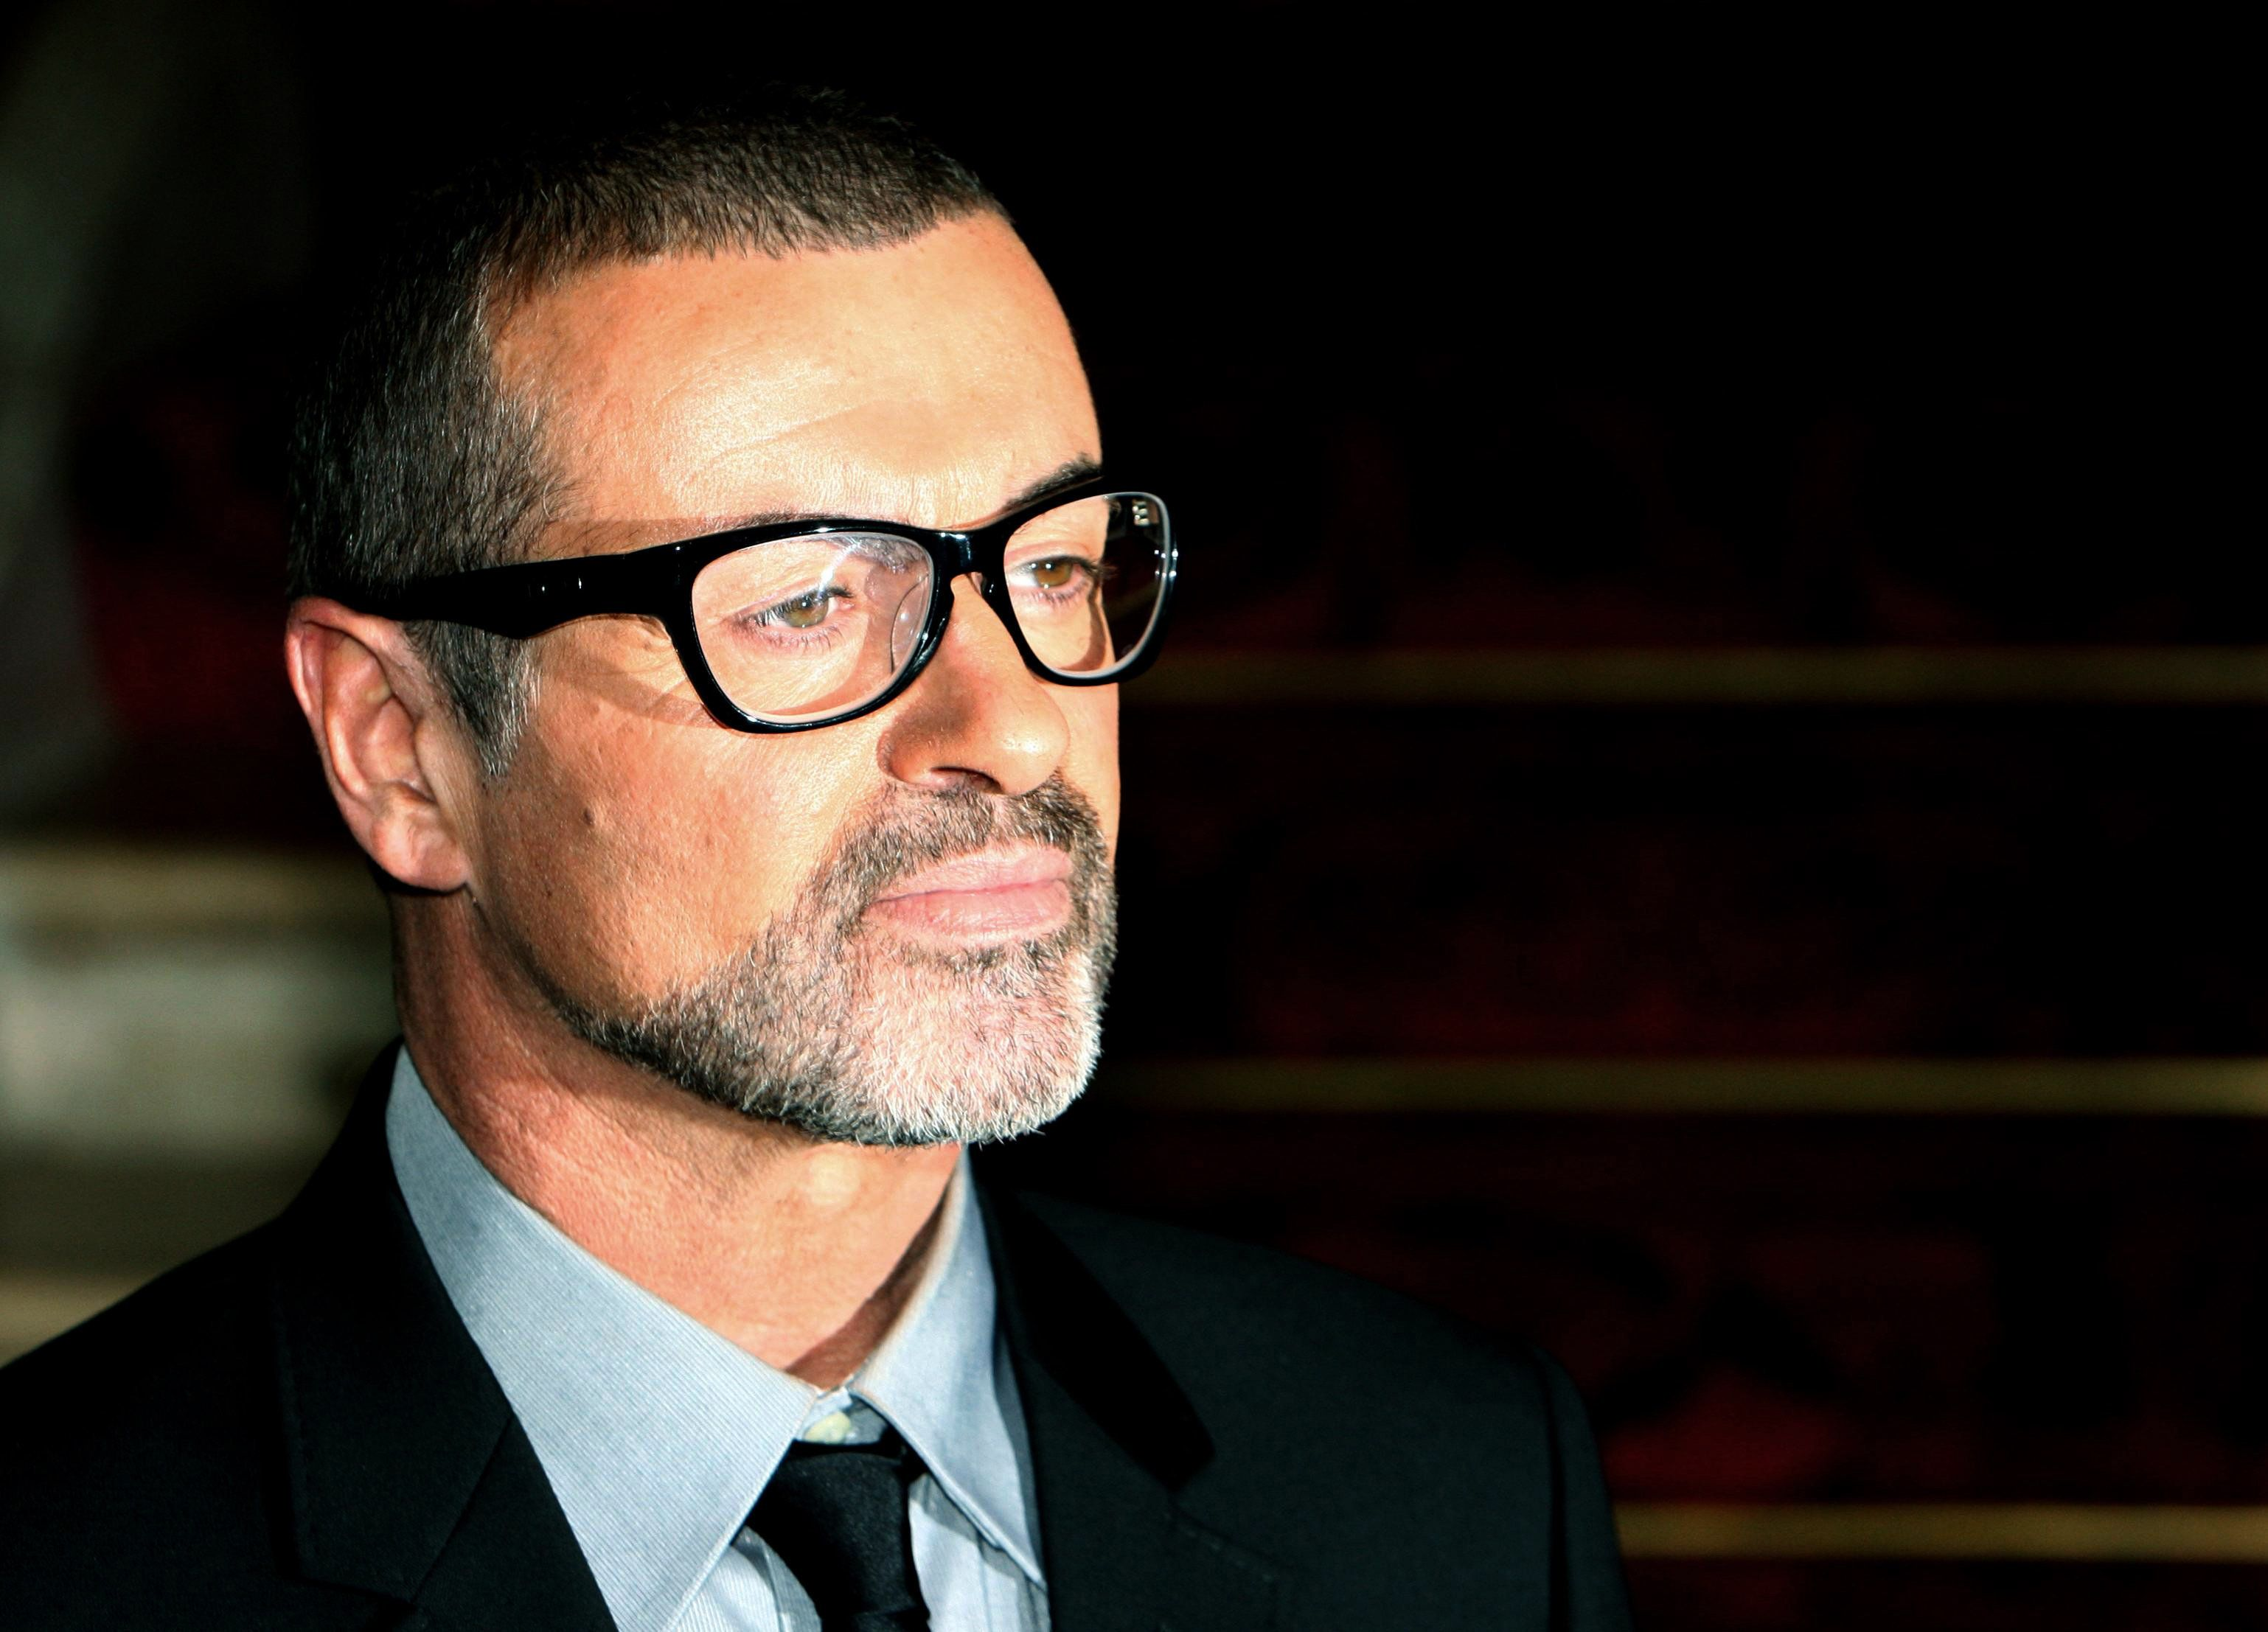 George struggled with his fame, but used it as a force for good and helping other people, says his former...